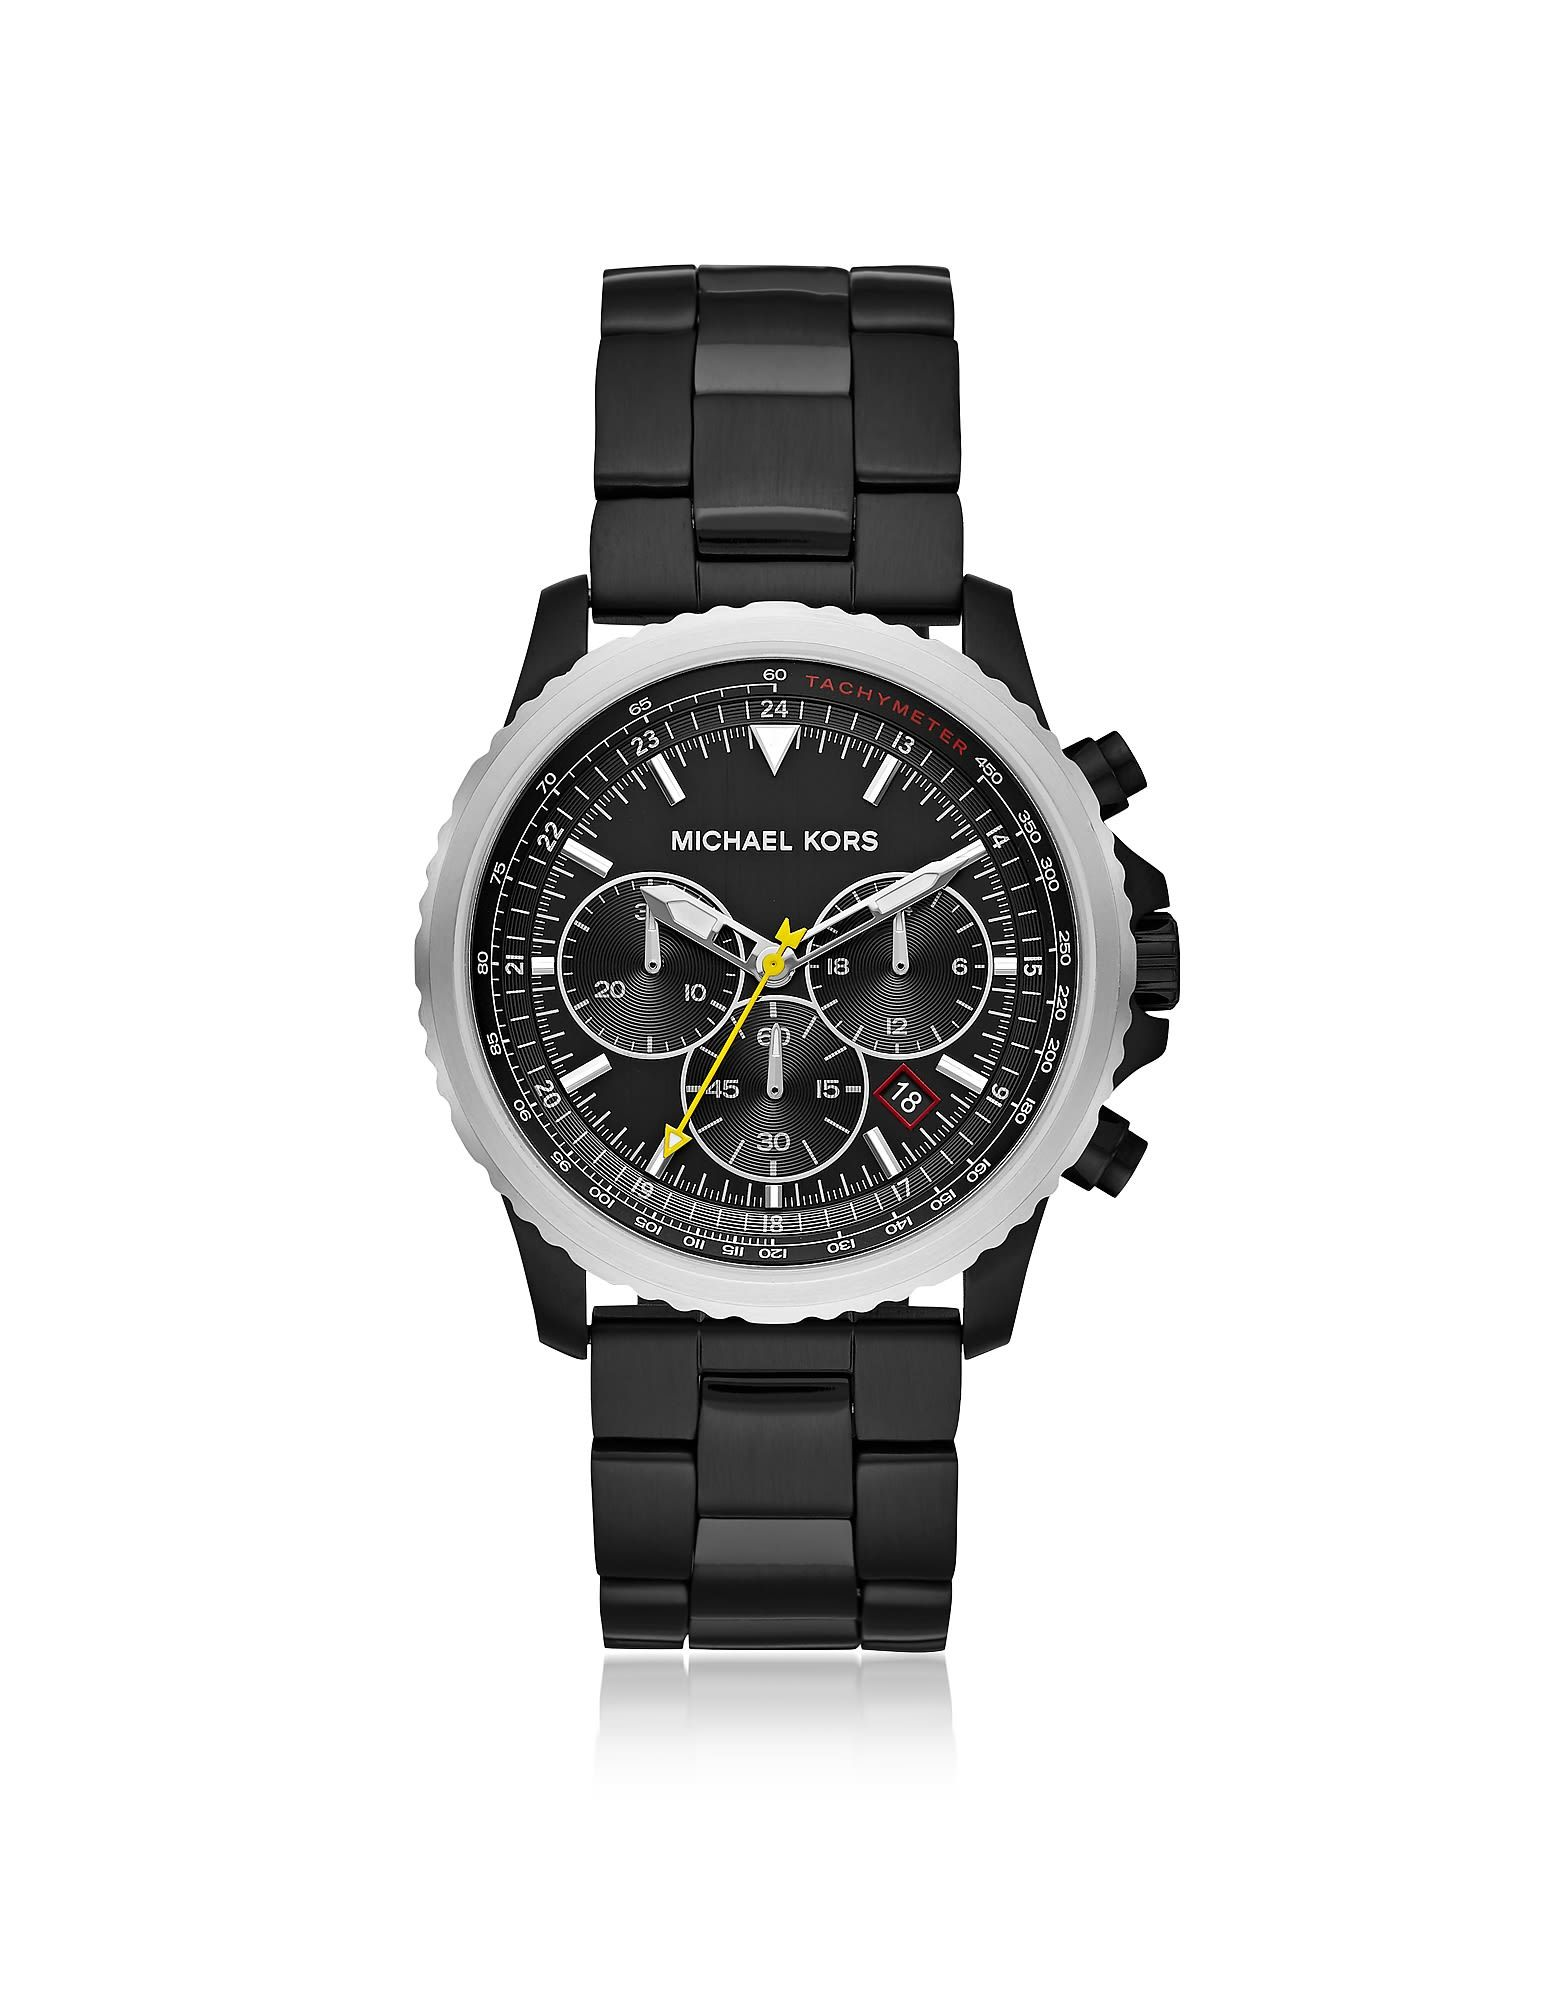 f4feebcd5a8c MICHAEL KORS THEROUX BLACK PLATED CHRONOGRAPH WATCH.  michaelkors ...